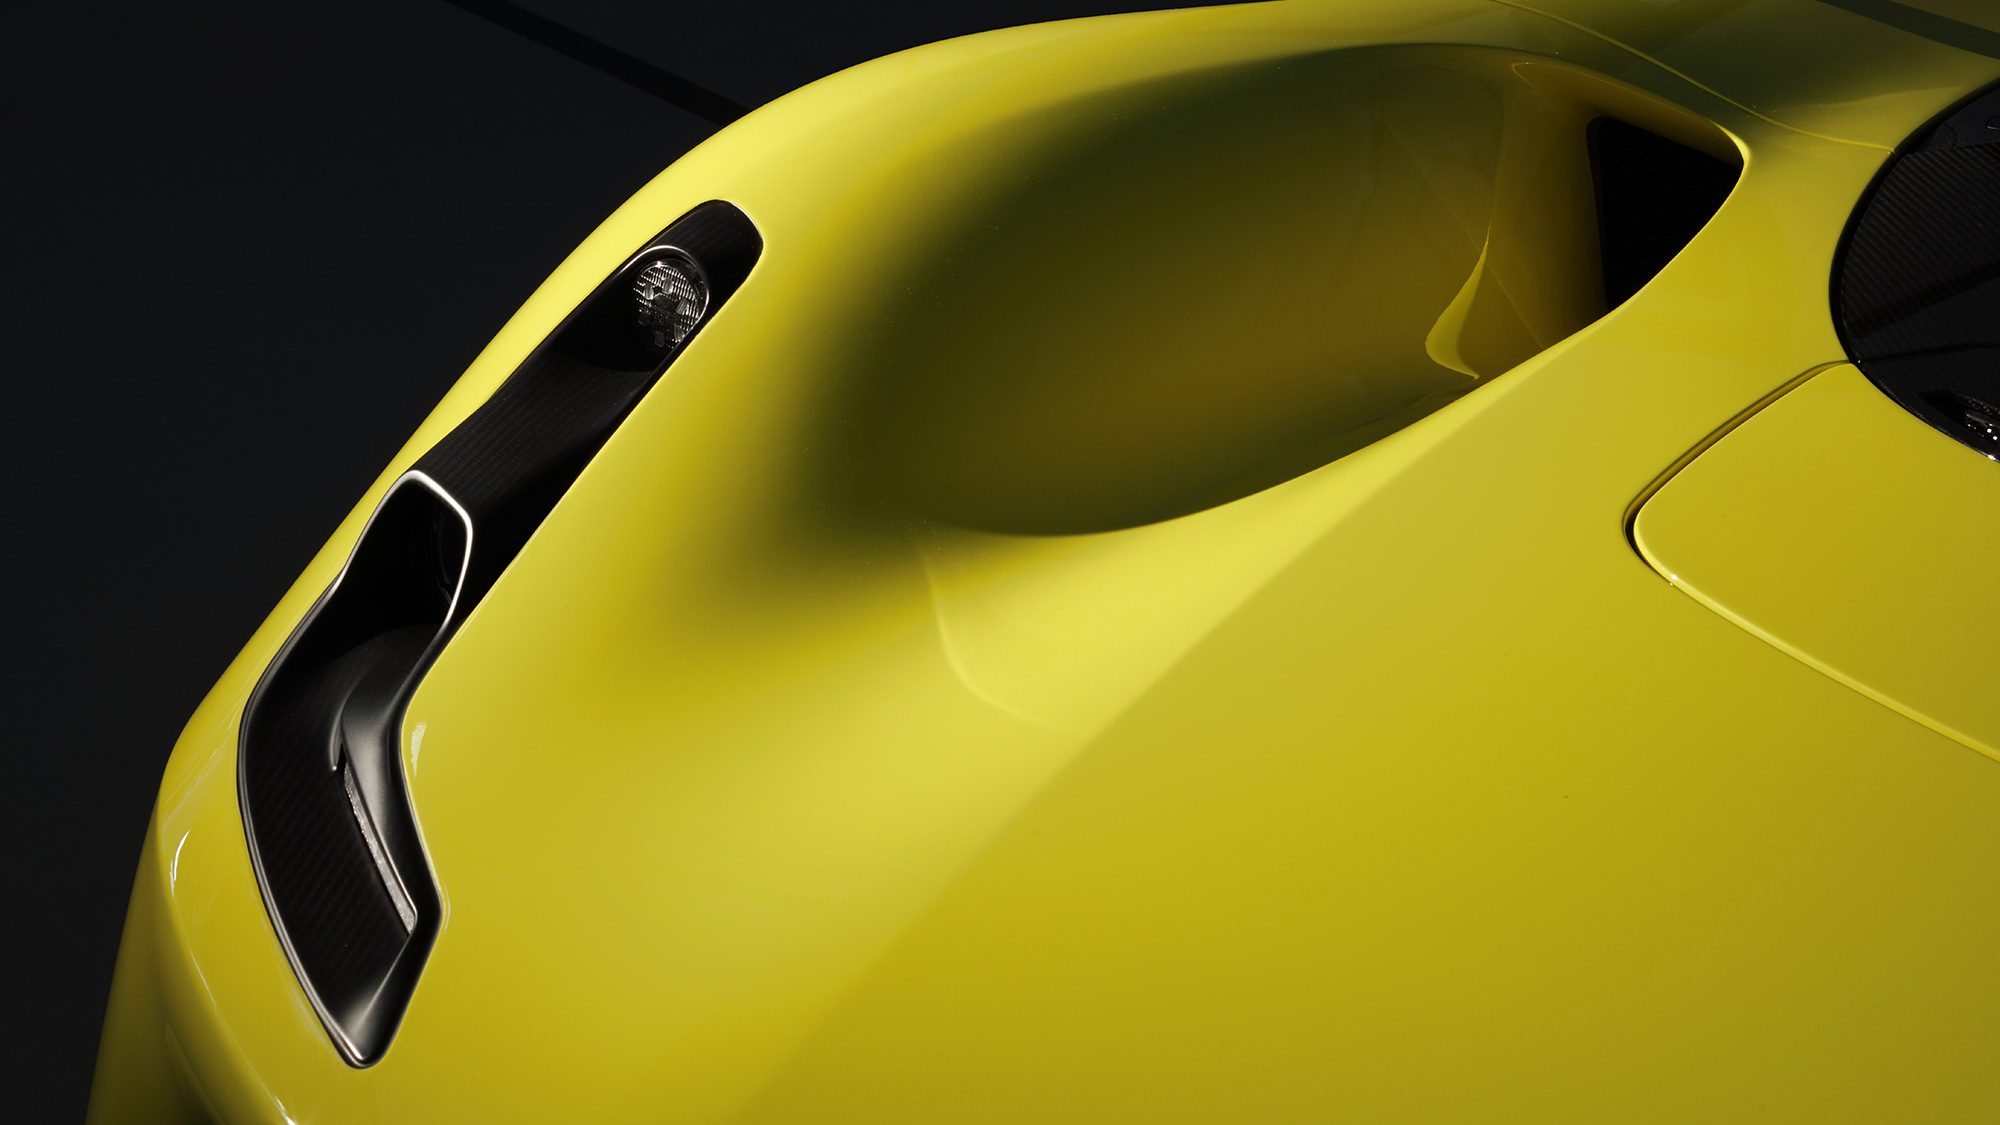 Dallara Stradale - Performance design for the road and track